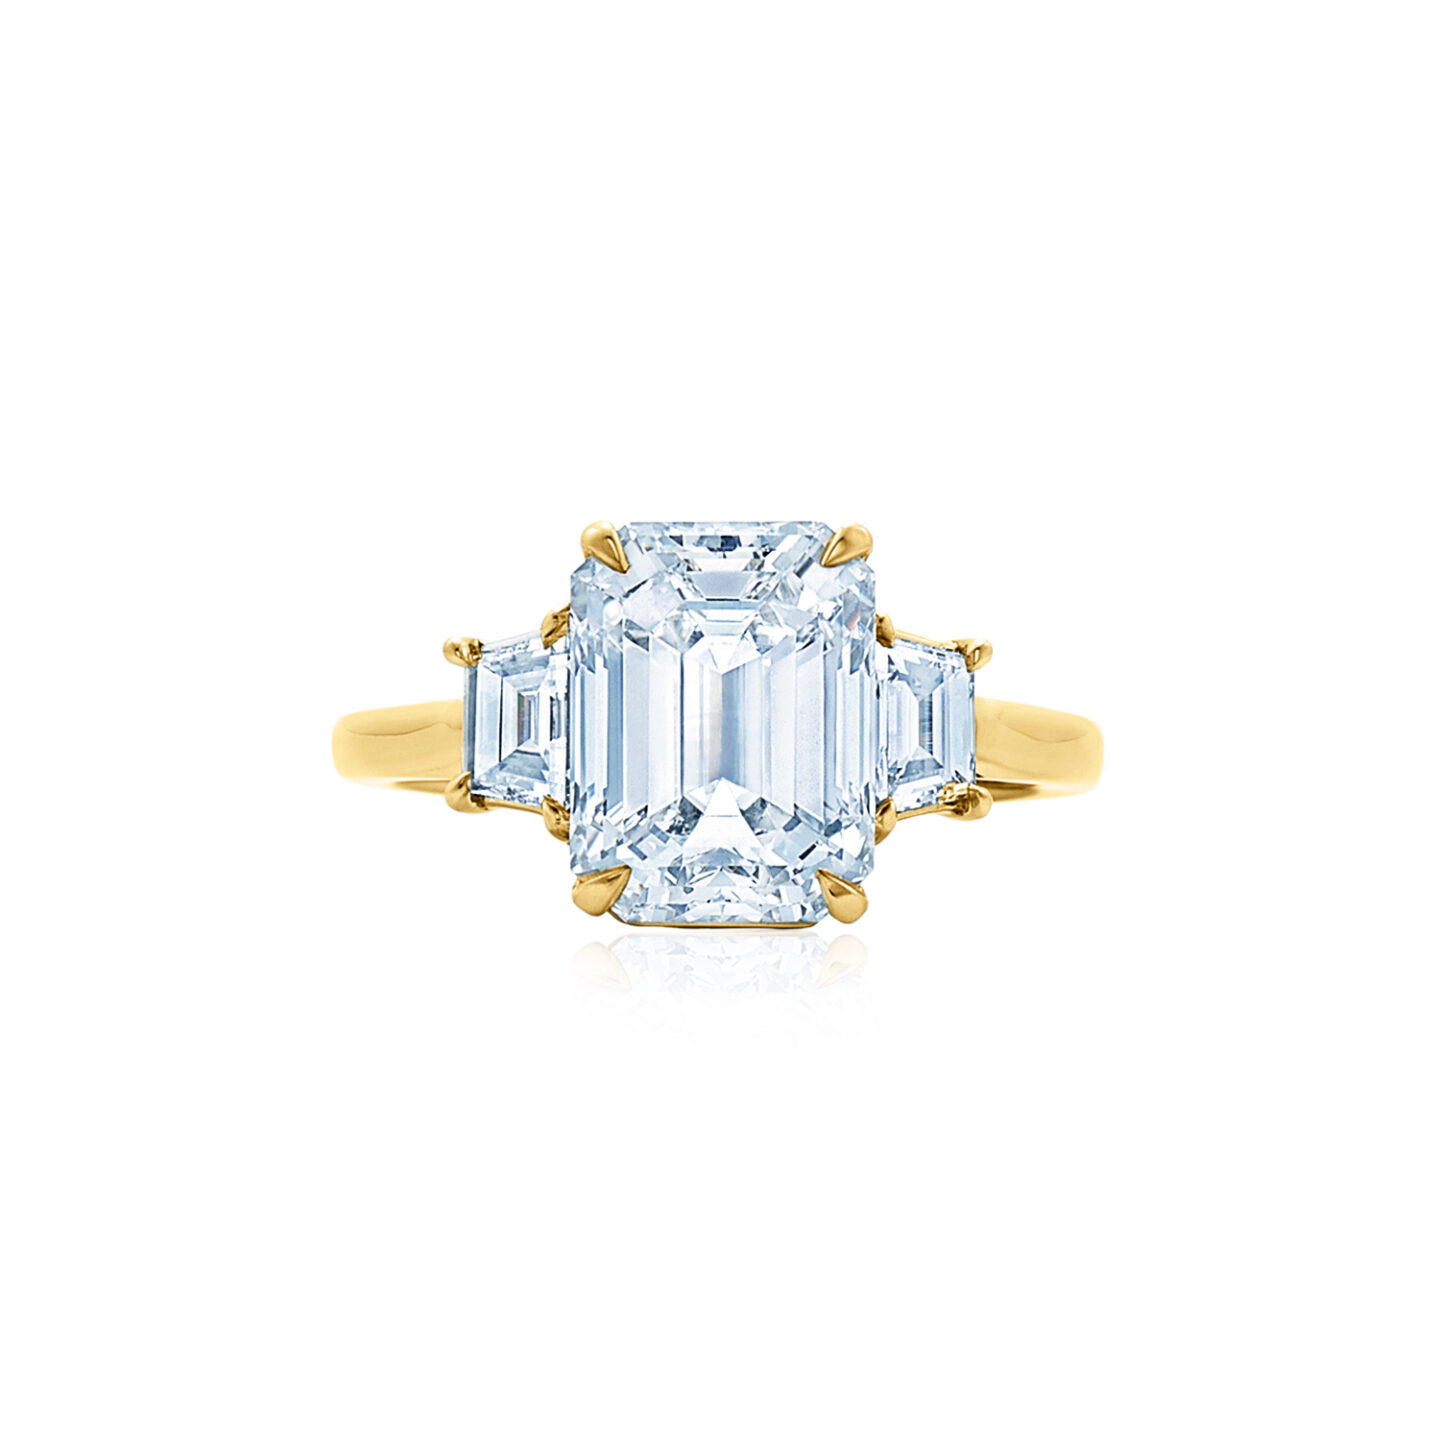 Emerald Cut Diamond Engagement Ring With Two Step Cut Trapezoid Side Stones In 18k Yellow Gold